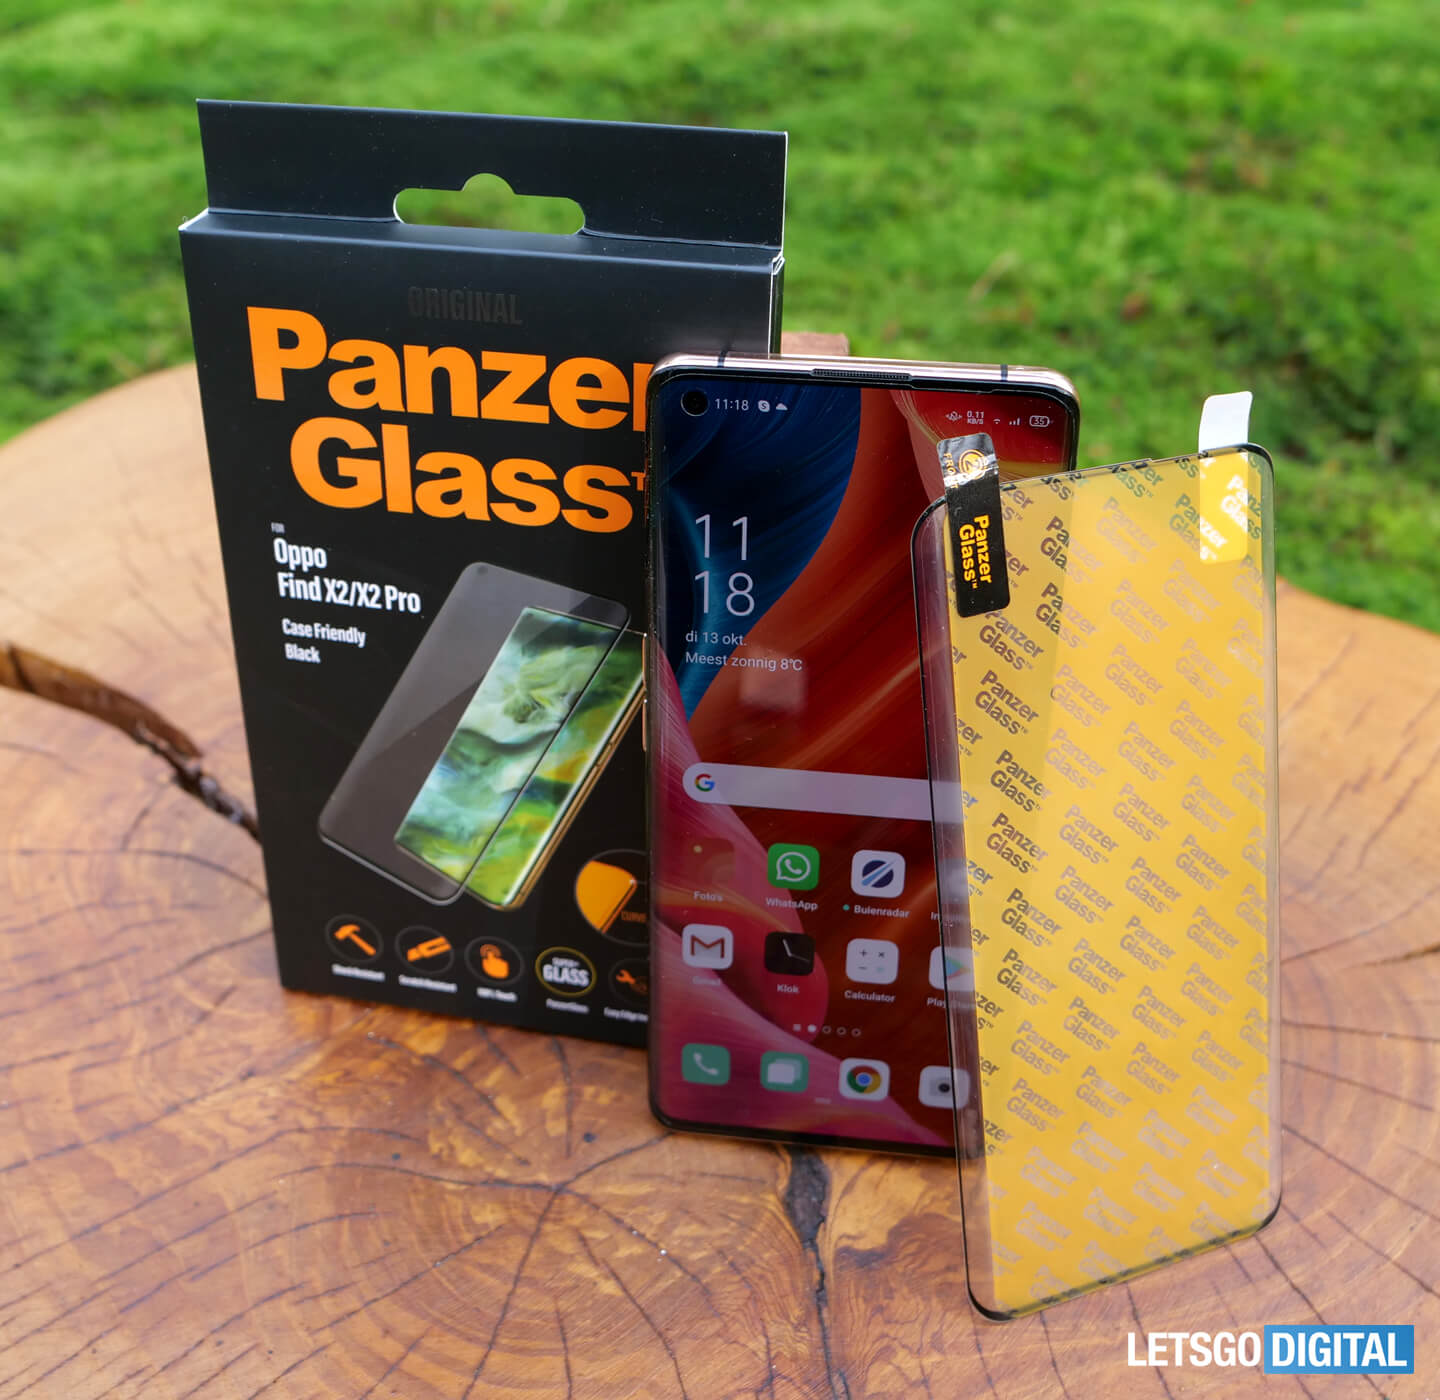 Review Oppo PanzerGlass screen protector